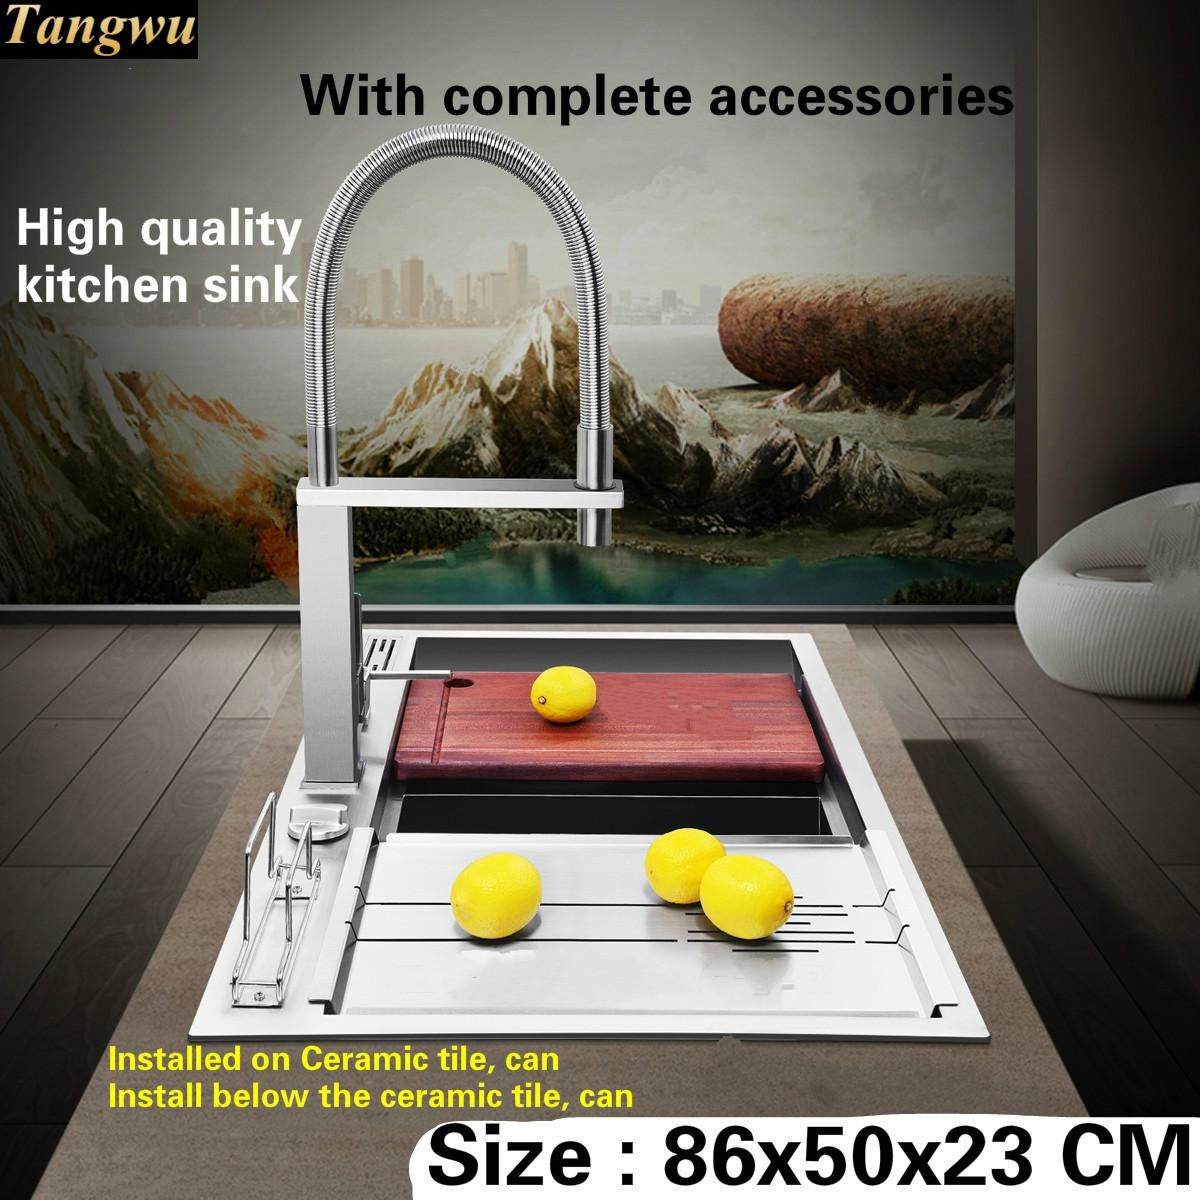 Tangwu Luxurious and high-grade kitchen sink button drainage 4 mm thick food grade stainless steel double groove big 86x50x23 CM